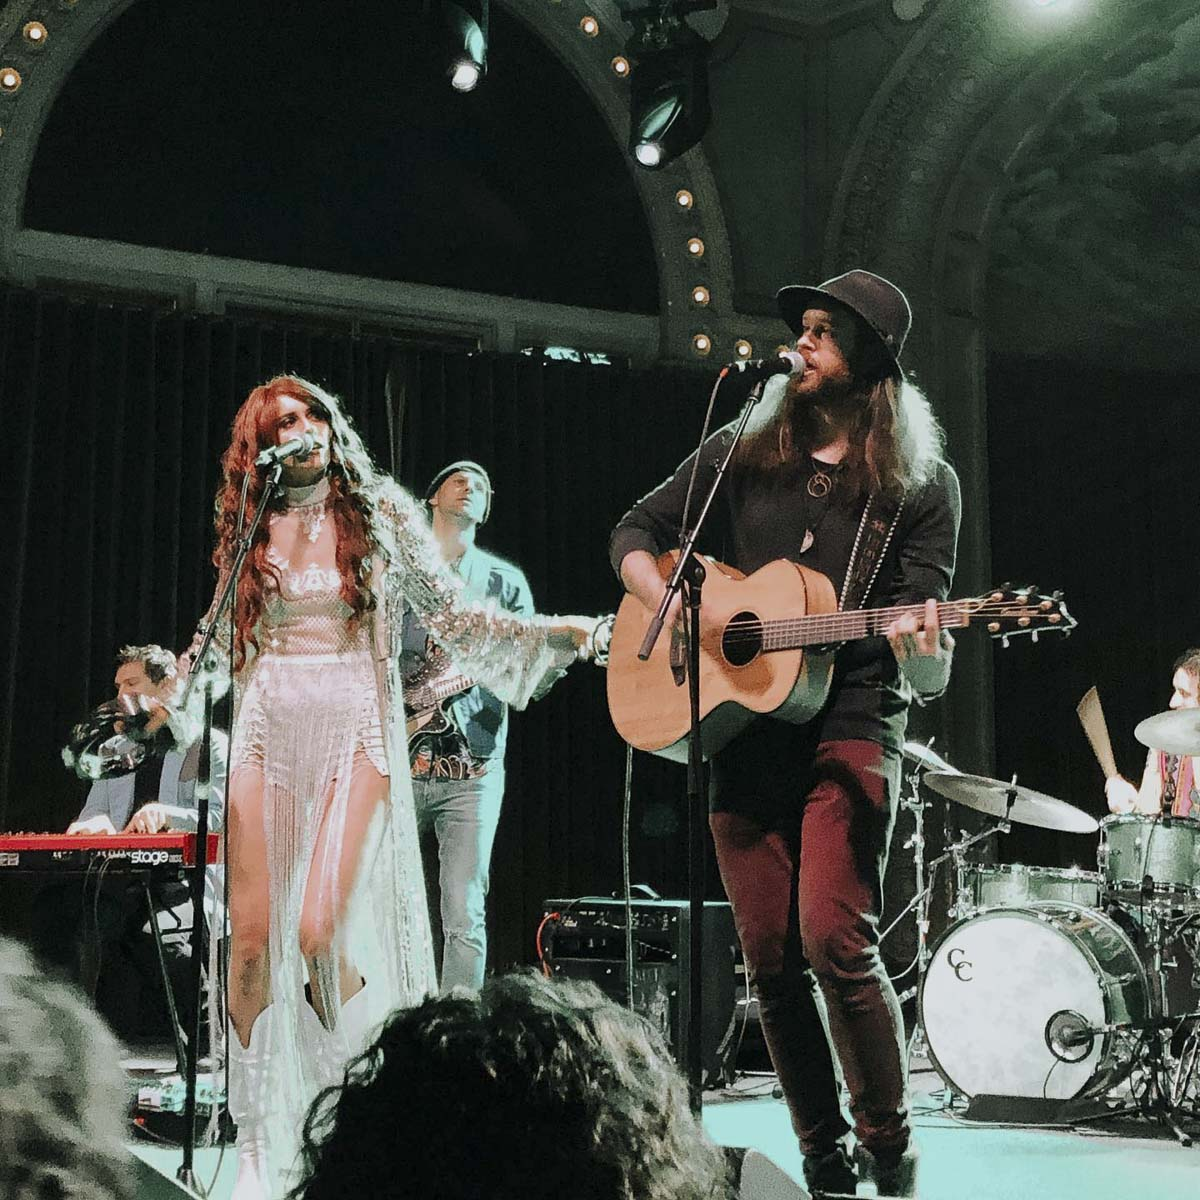 Fox and Bones has performed all over, including many shows right here at home like this one at the McMenamins Crystal Ballroom. Photo courtesy of Fox and Bones